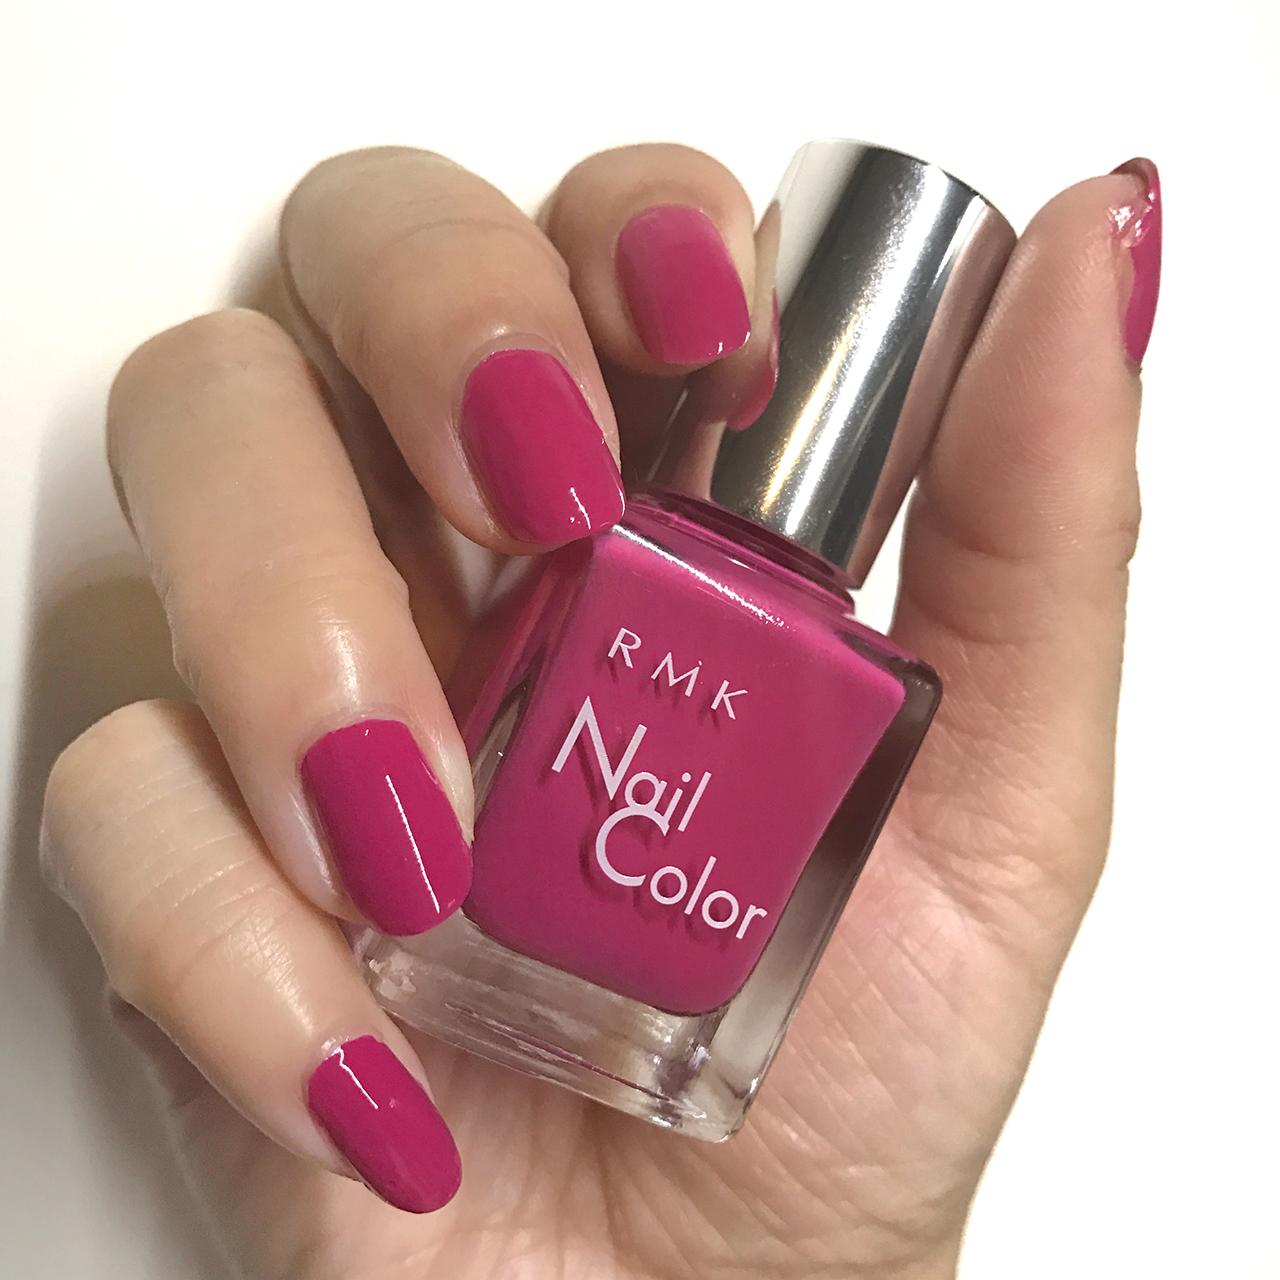 RMK Nail Color EX67 for Spring 2017